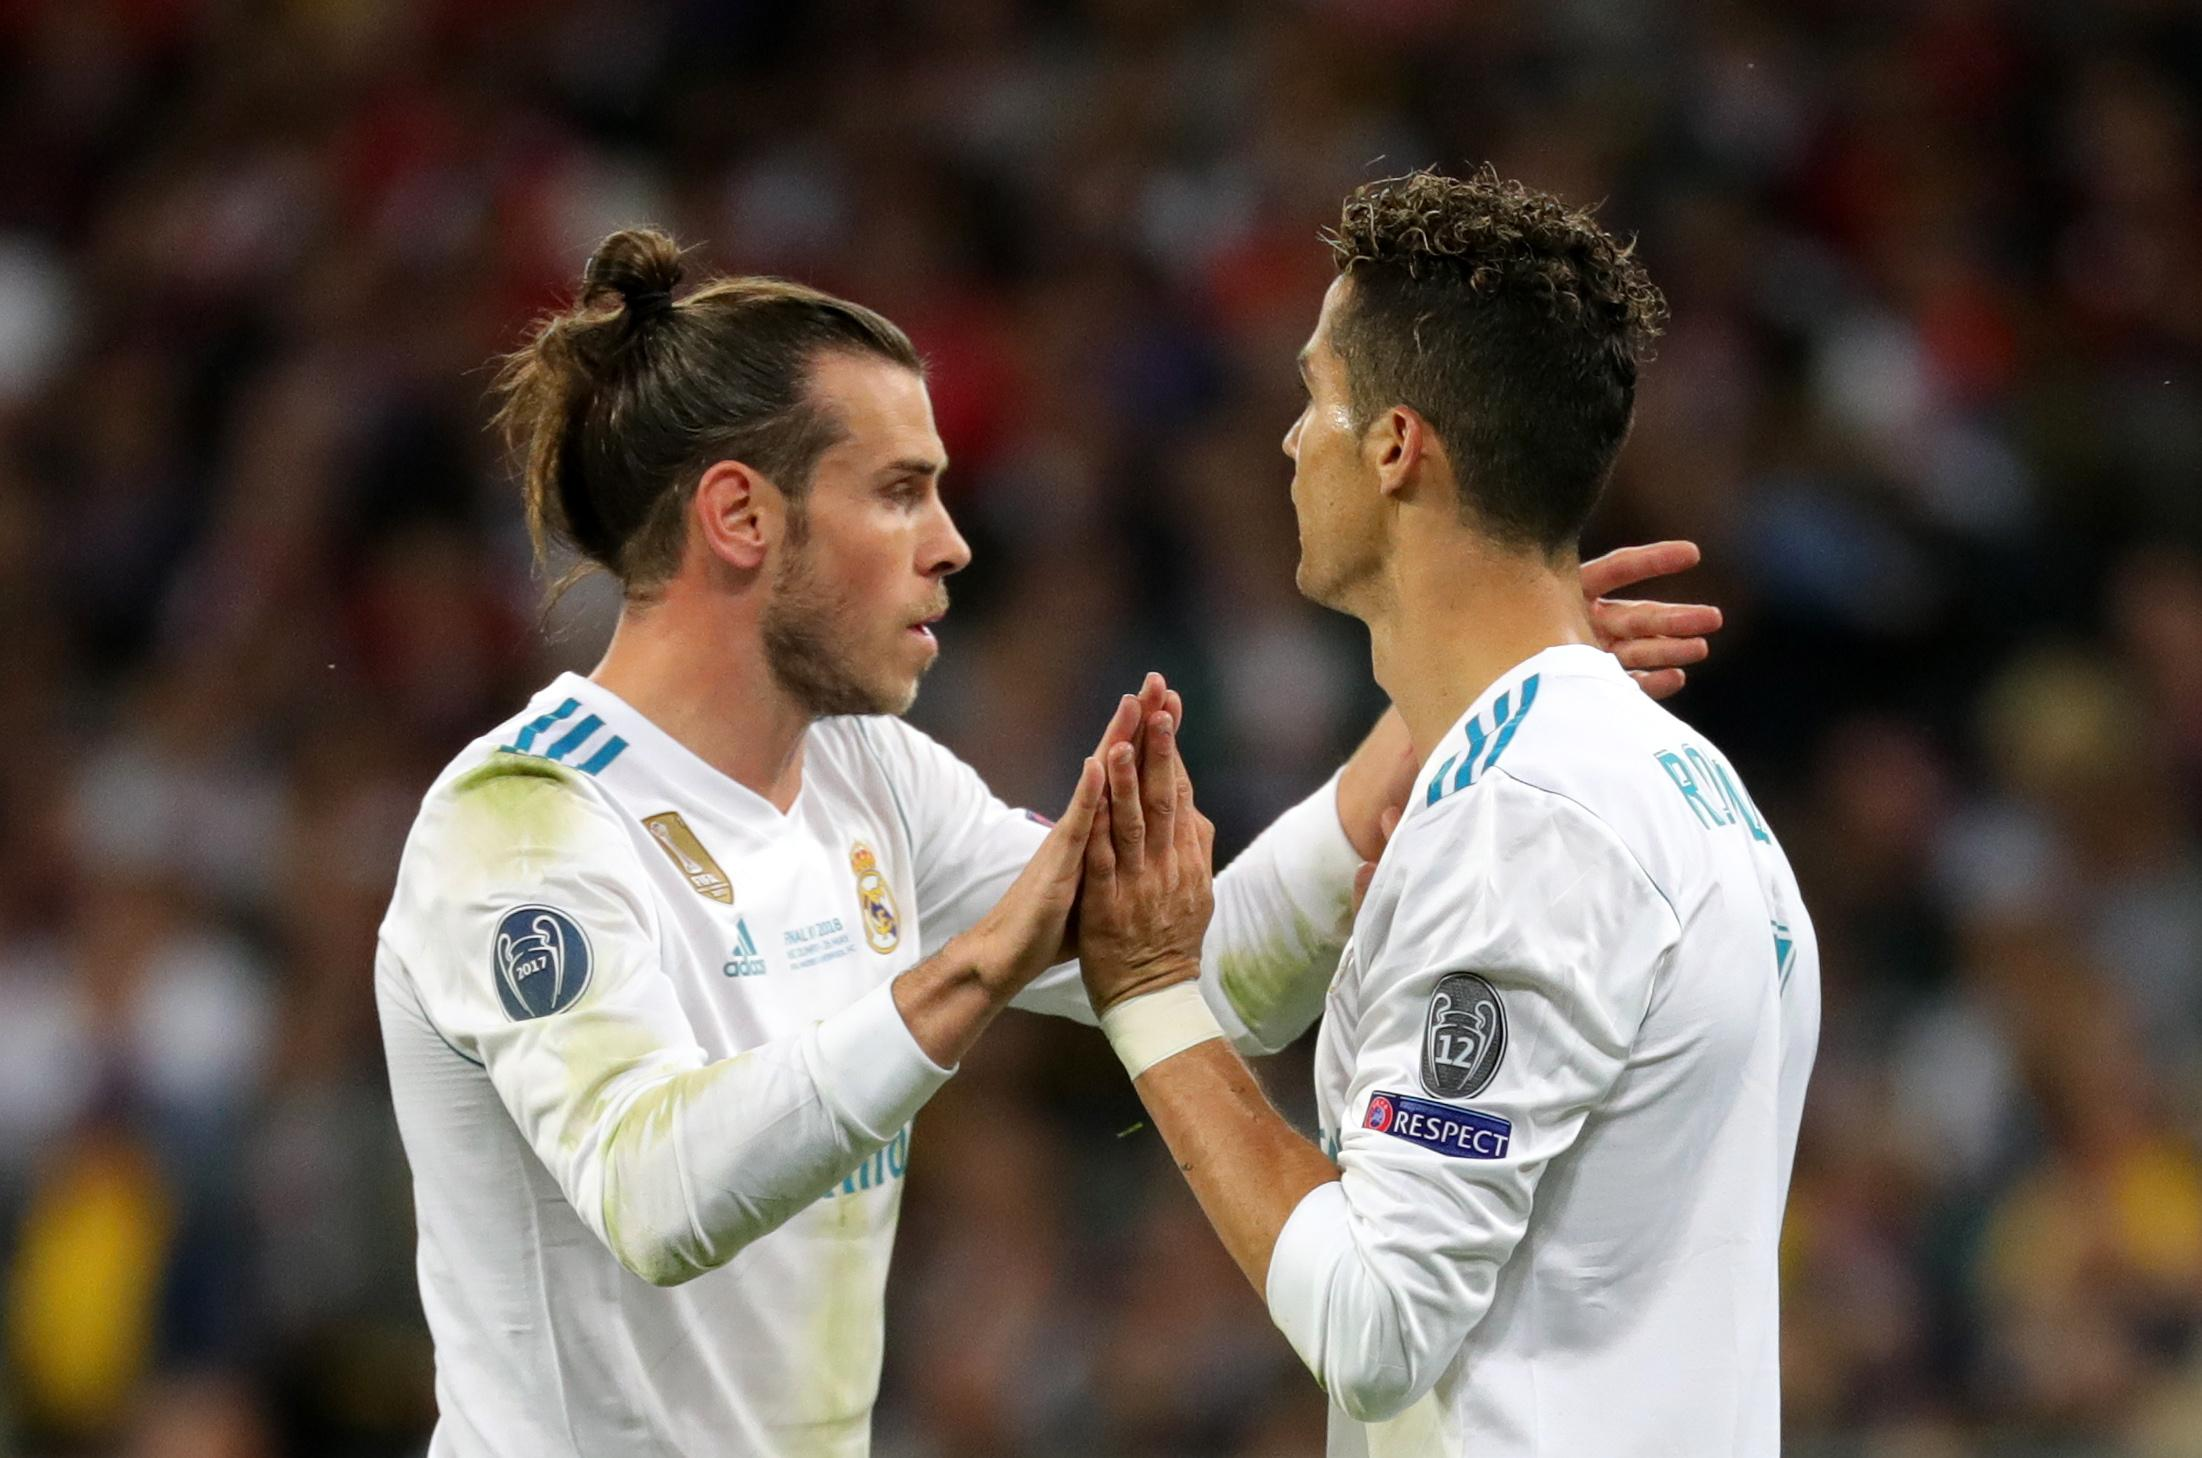 Bale and Ronaldo have clashed in the past